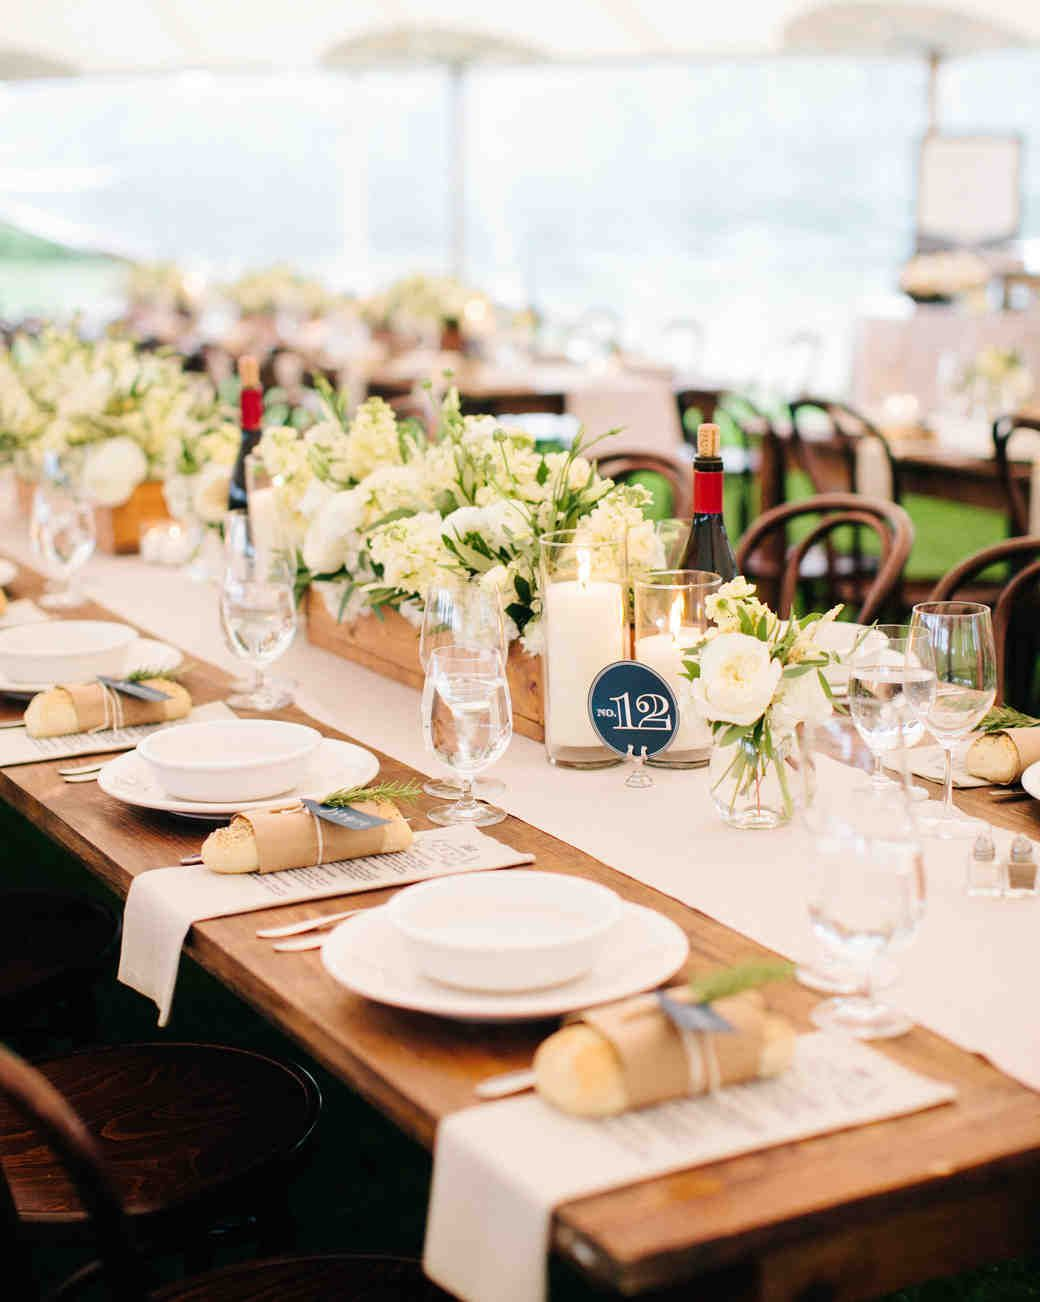 55 Clever Ways To Trim Your Wedding Budget Table Decorations